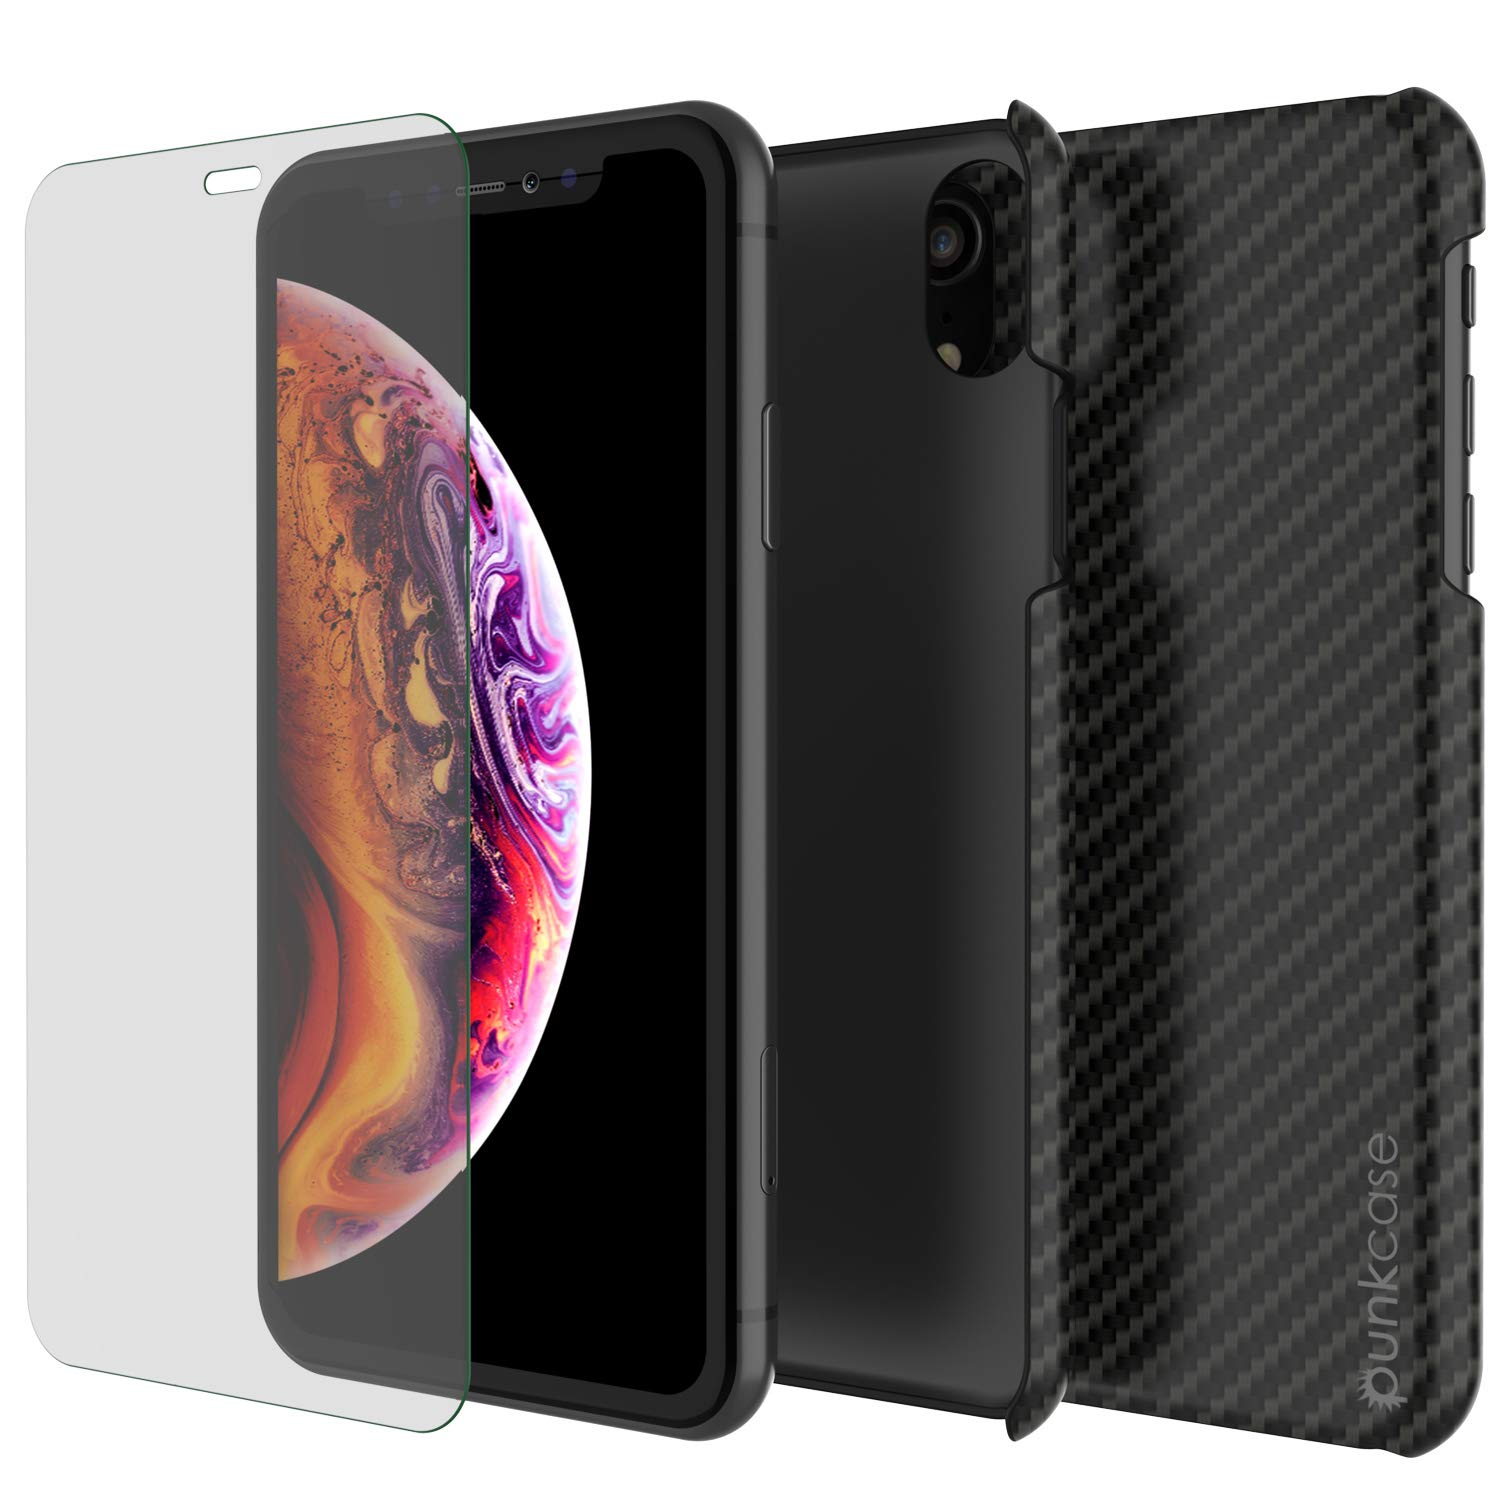 iPhone XR Case, Punkcase CarbonShield, Heavy Duty & Ultra Thin 2 Piece Dual Layer PU Leather Cover [Shockproof][Non Slip] with PUNKSHIELD Screen Protector for Apple iPhone XR [Jet Black]